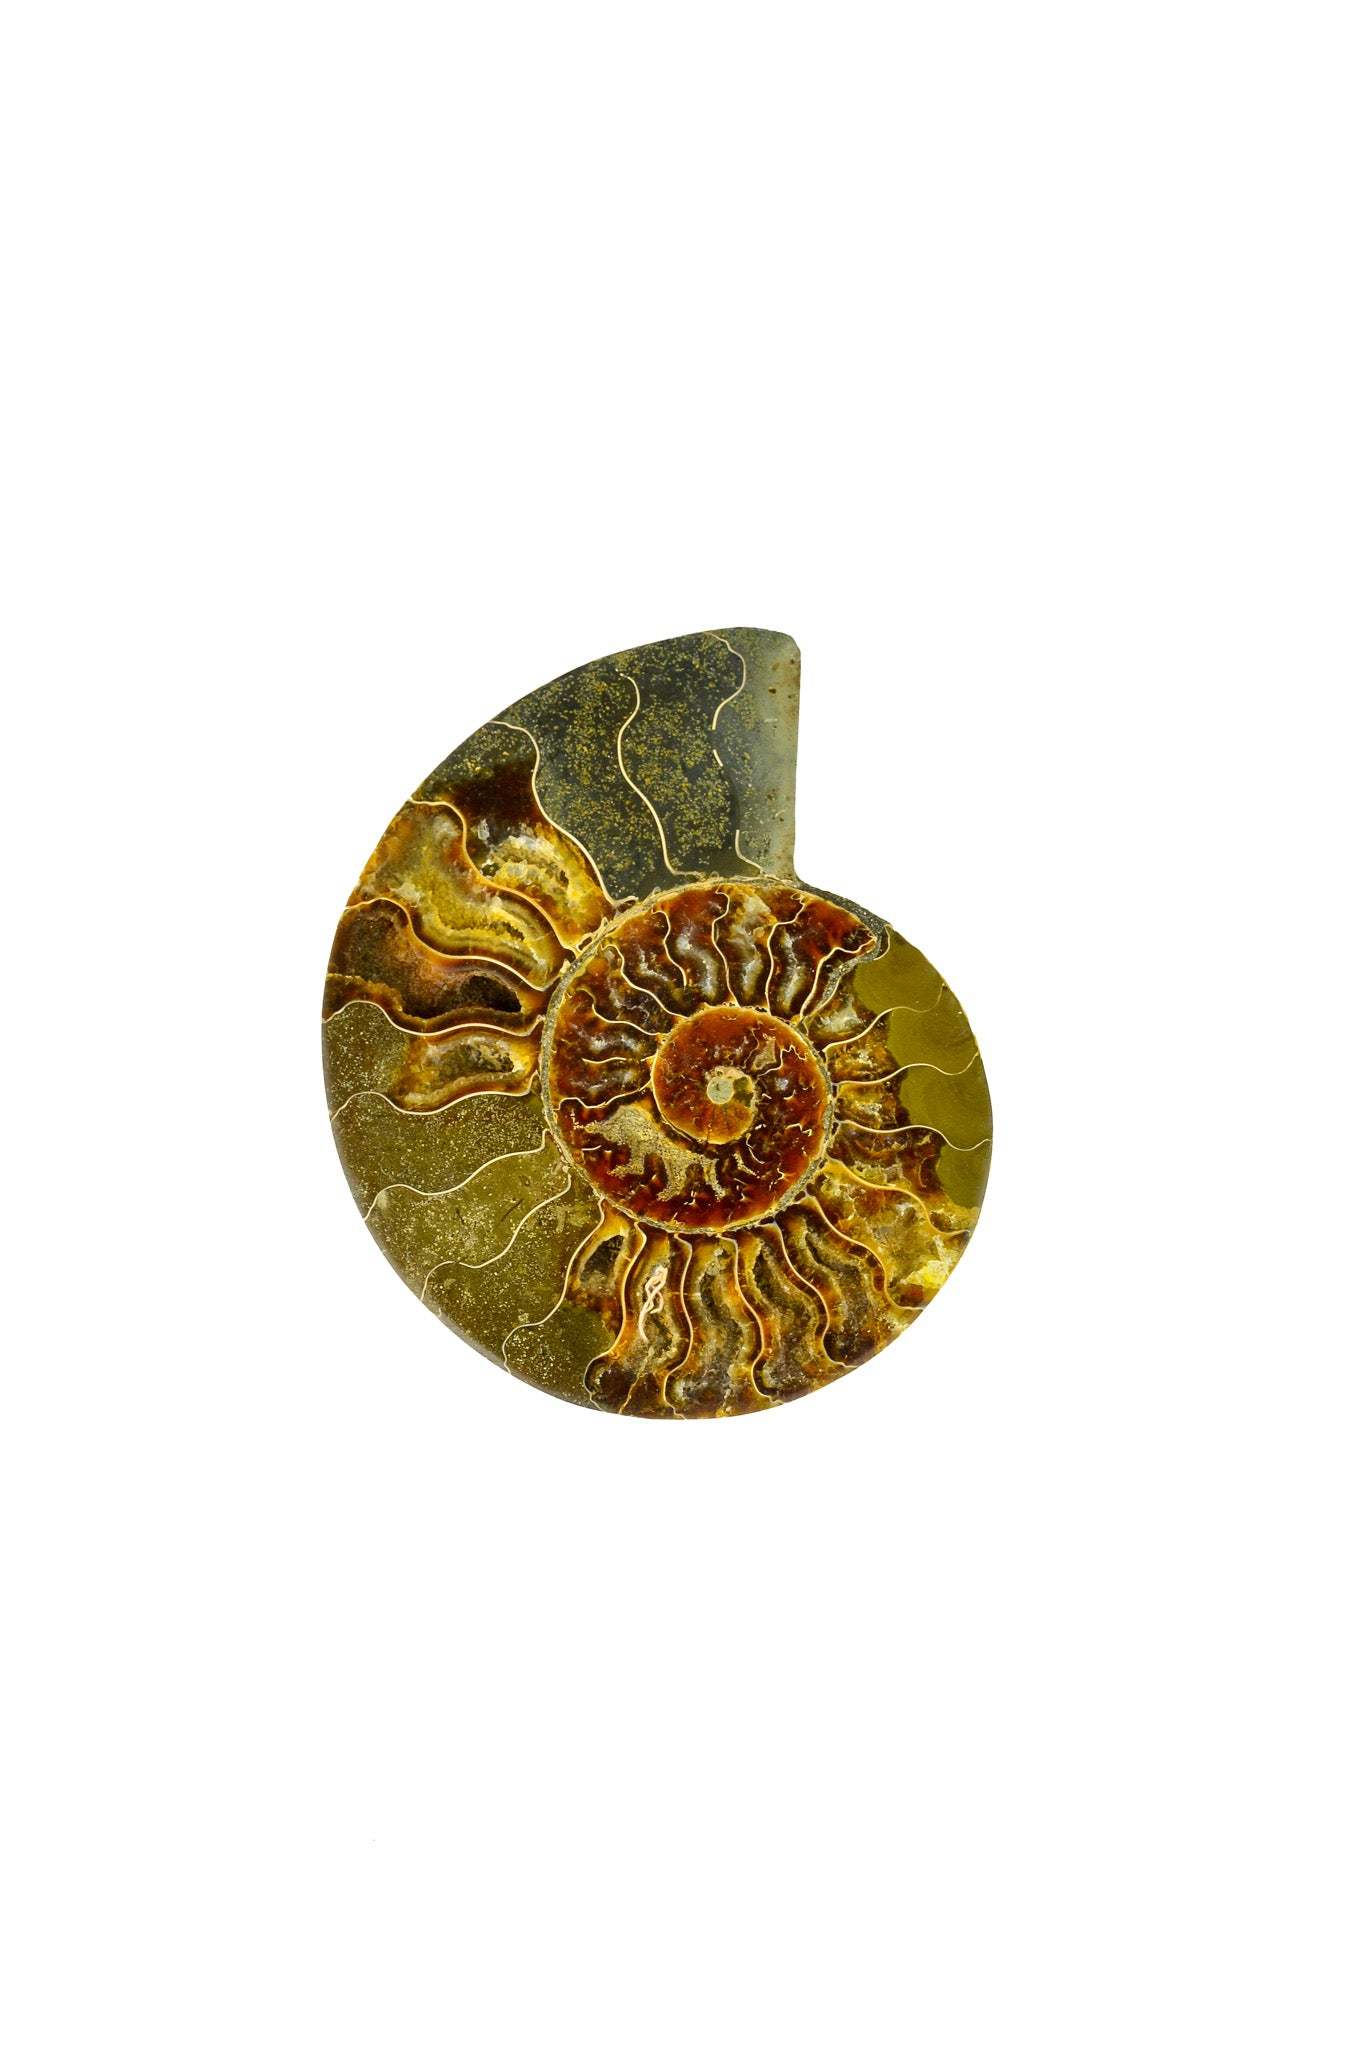 Madagascar Ammonite - Sliced